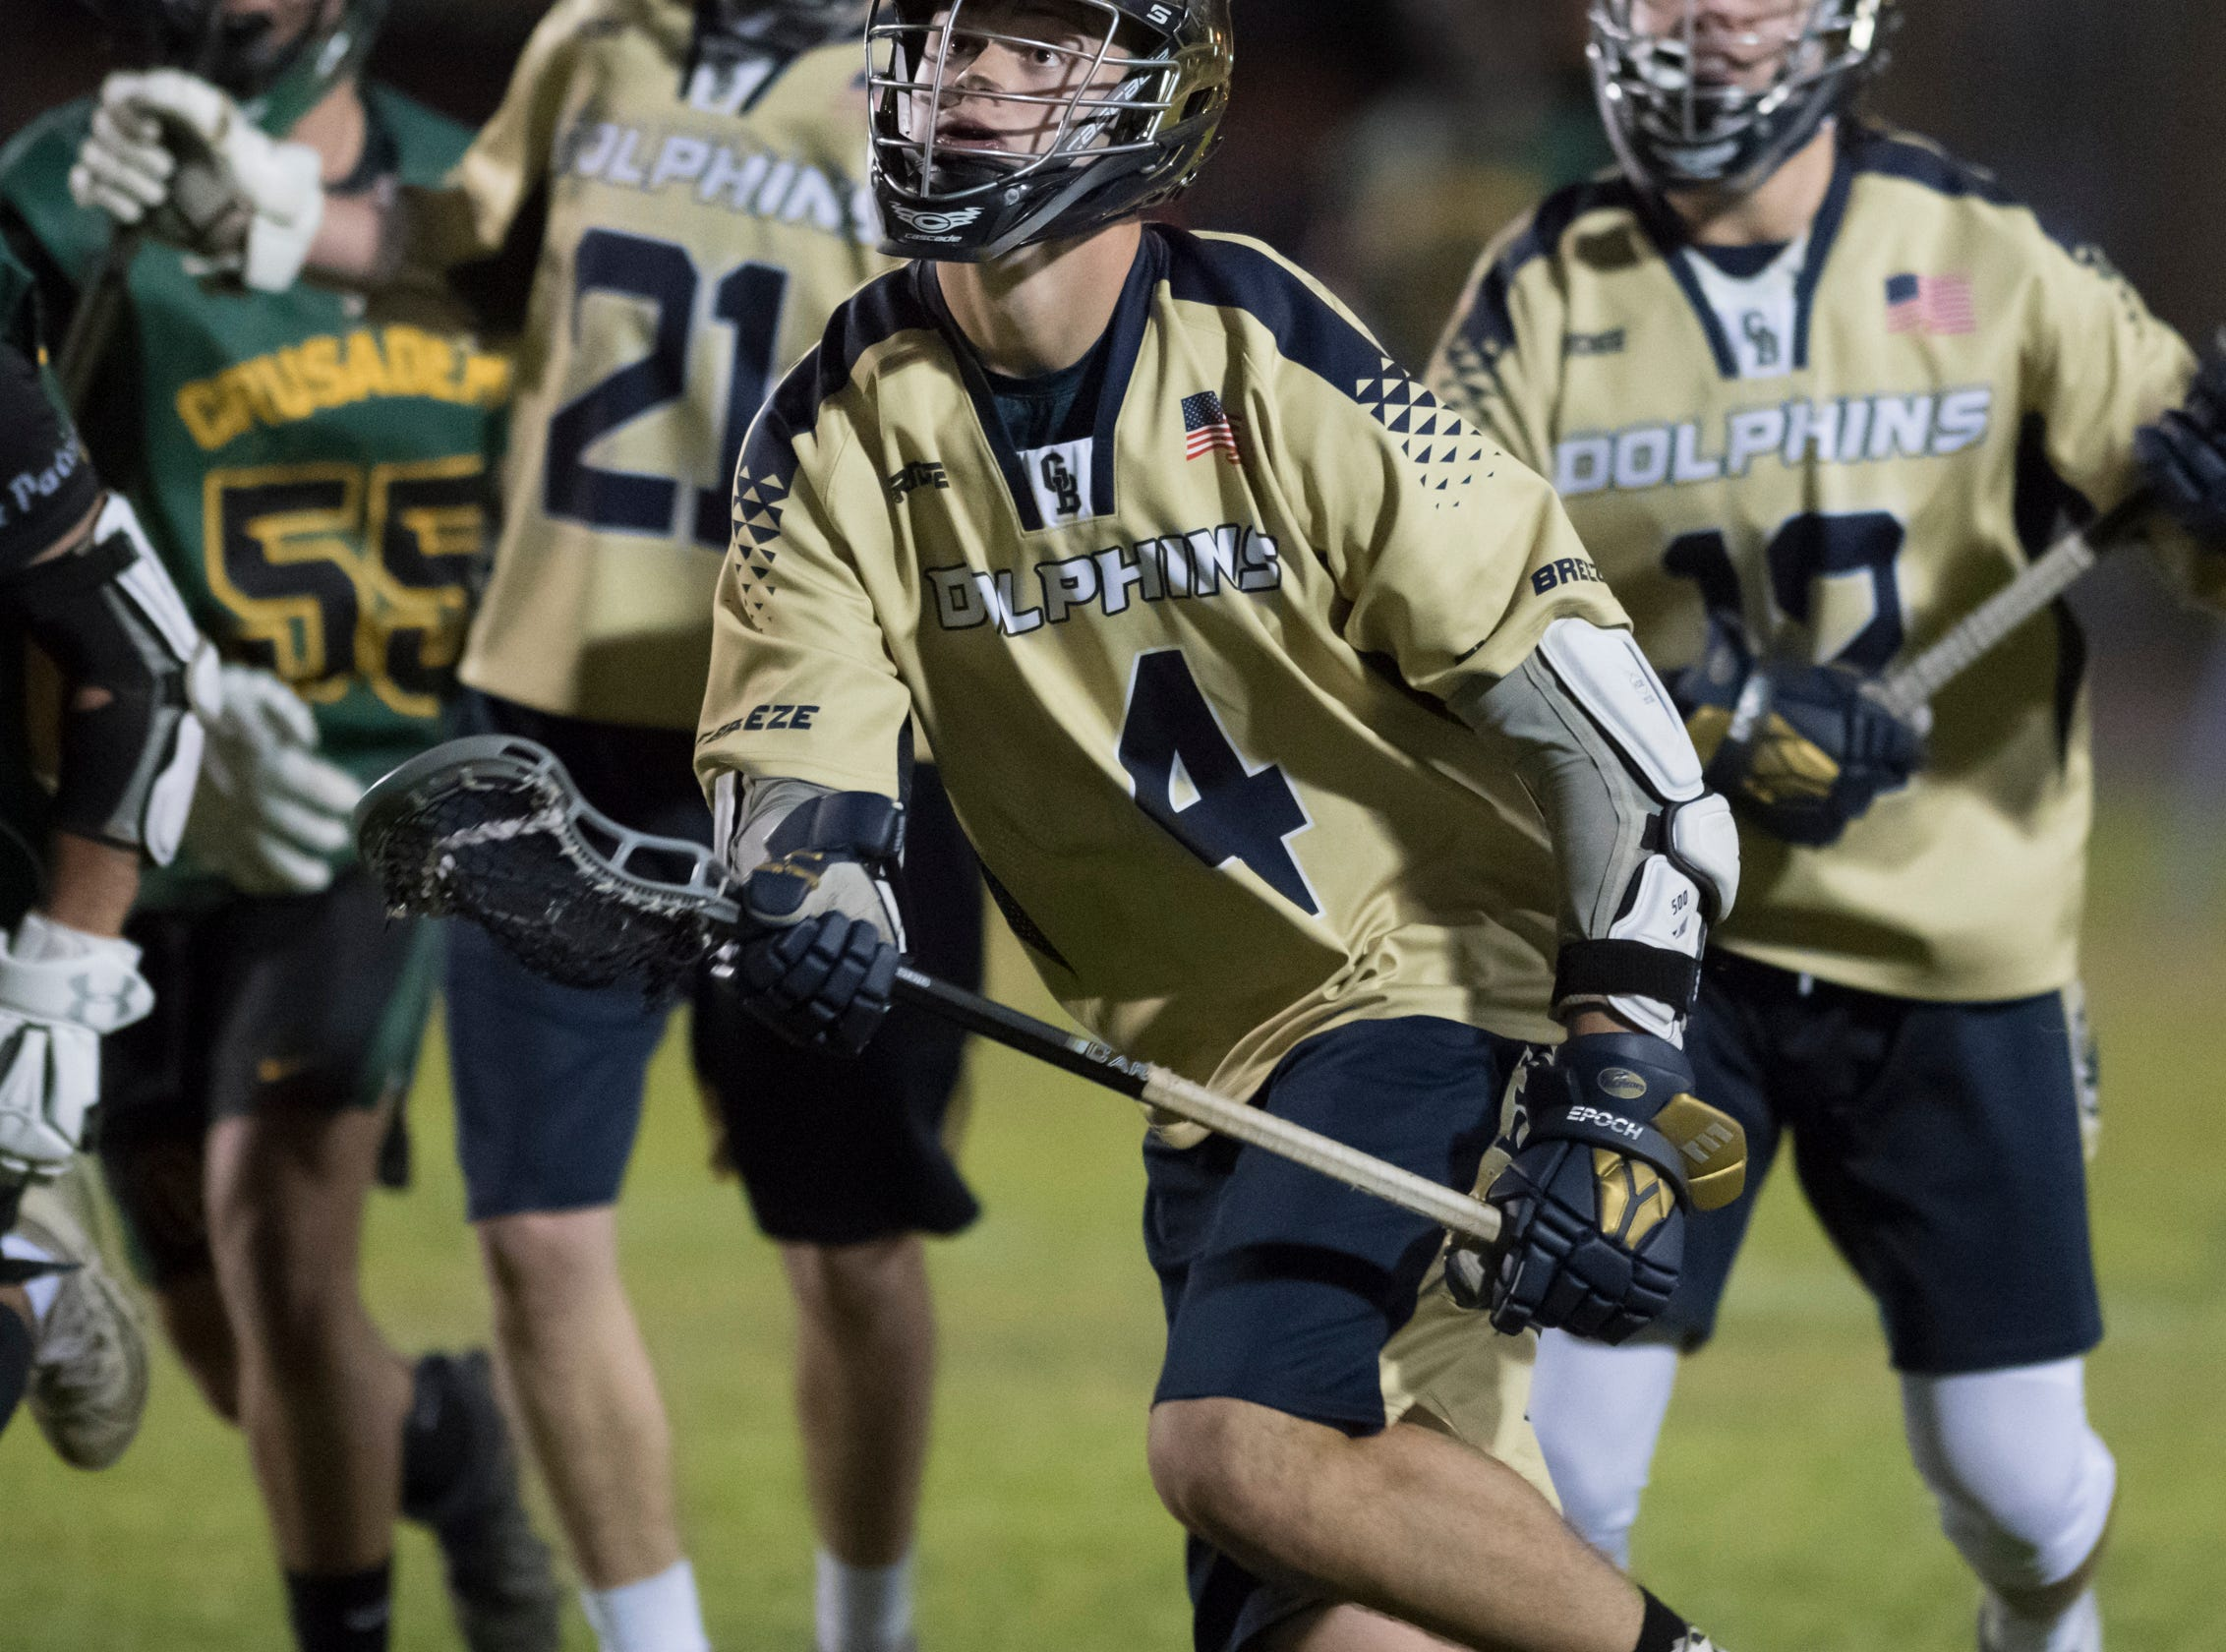 Tucker Smith (4) keeps his eyes on a loose ball during the Catholic vs. Gulf Breeze boys lacrosse game at Gulf Breeze High School on Wednesday, March 6, 2019.